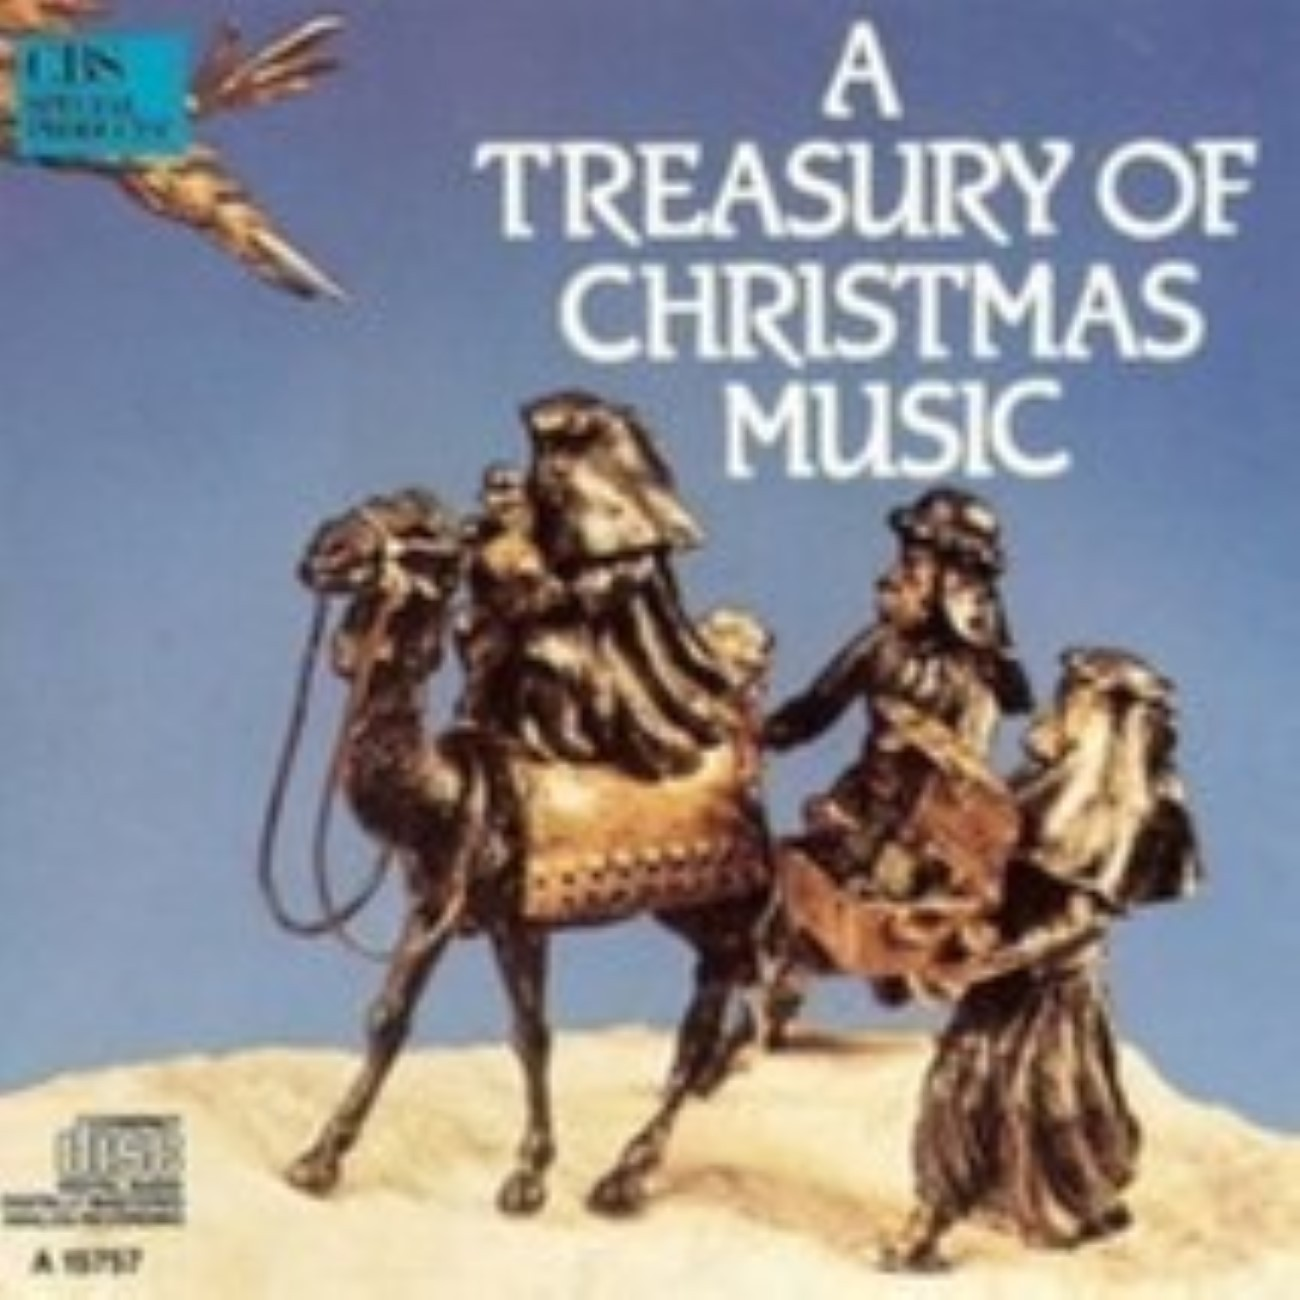 A Treasury of Christmas Music by Various Cd